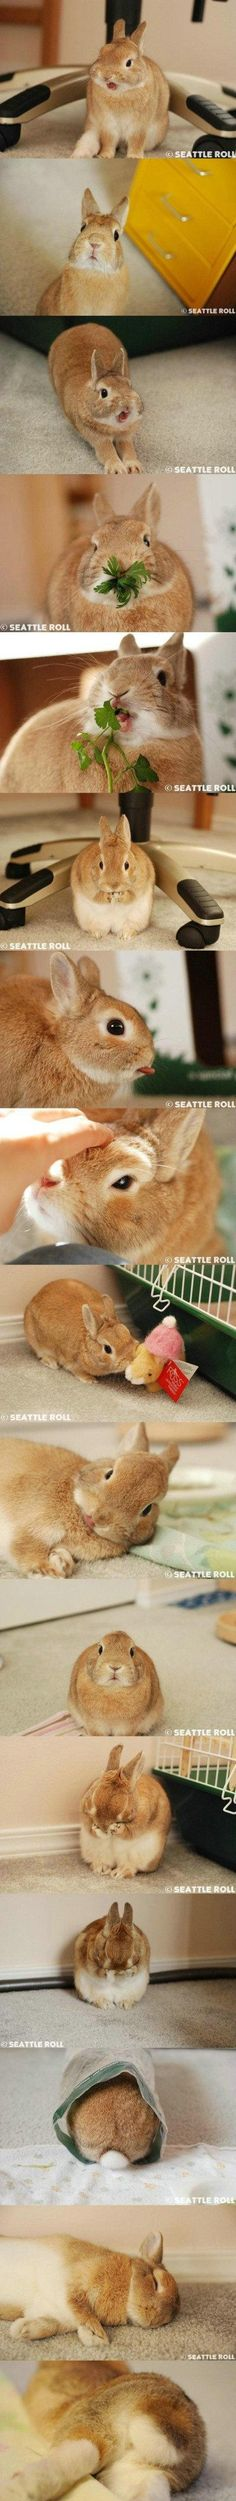 great series of pics of a bunny and all the wonderful things I love about…